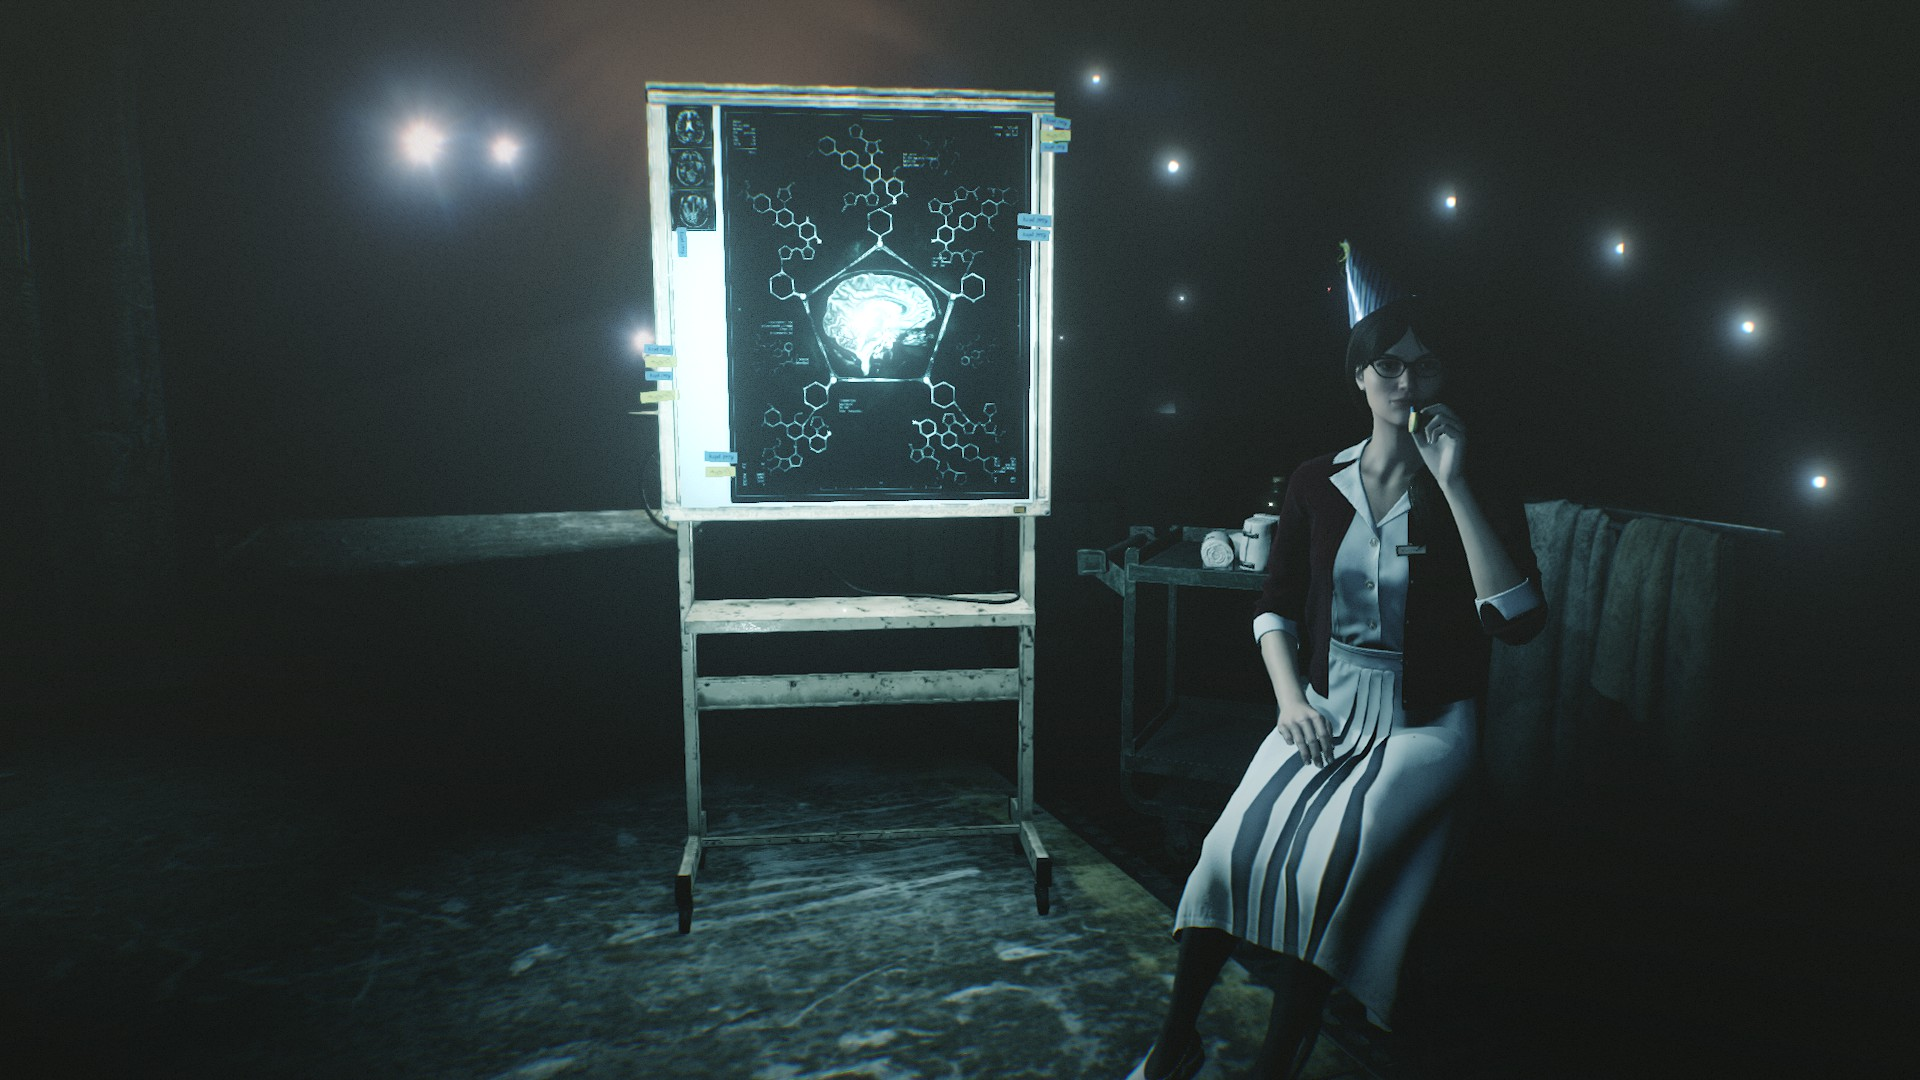 601430_screenshots_20171018205222_1.jpg - Evil Within 2, the